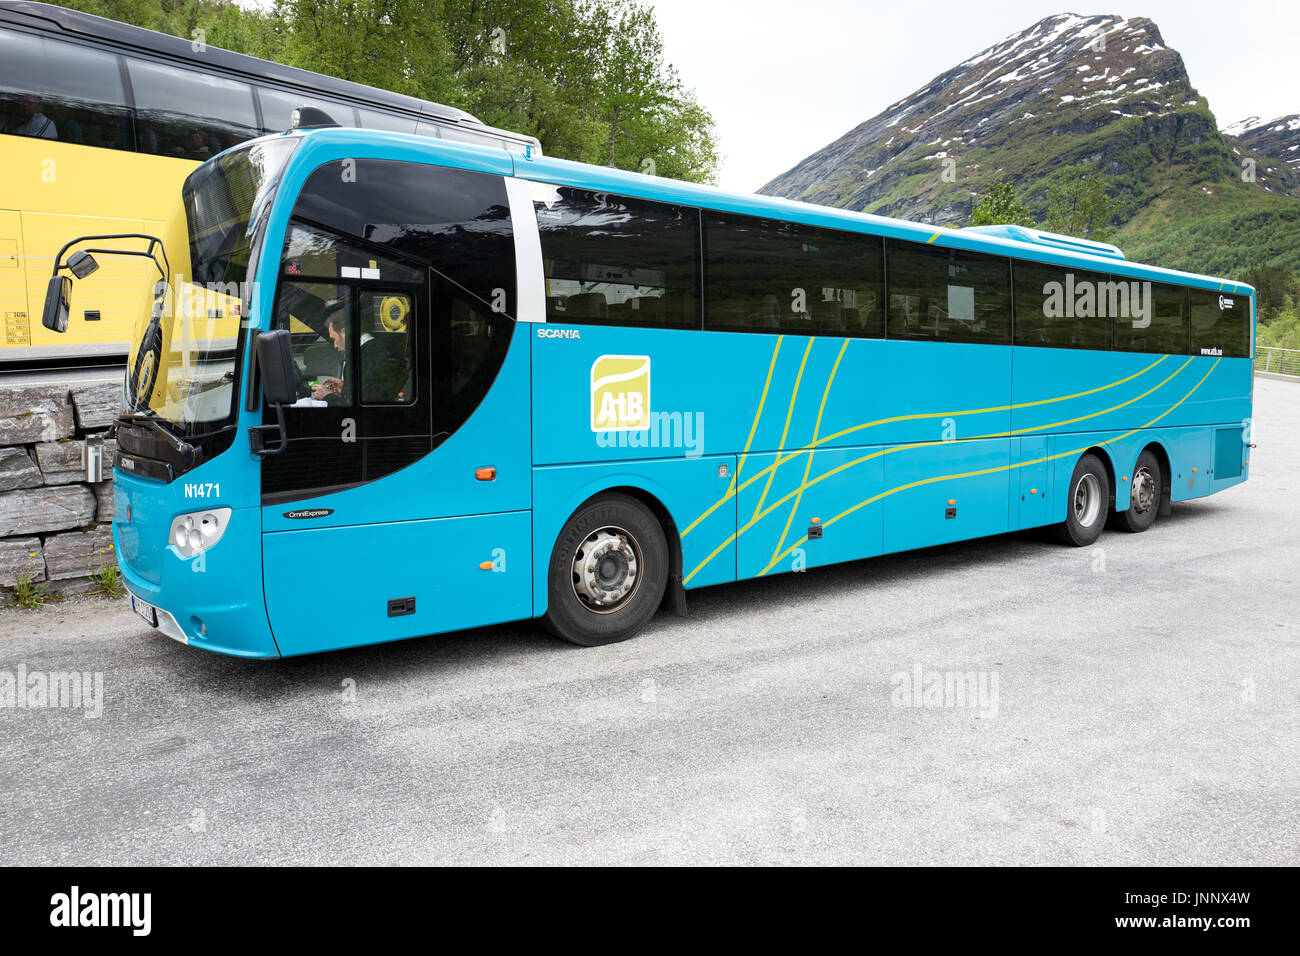 545 Scania Bus Photos - Free & Royalty-Free Stock Photos from Dreamstime